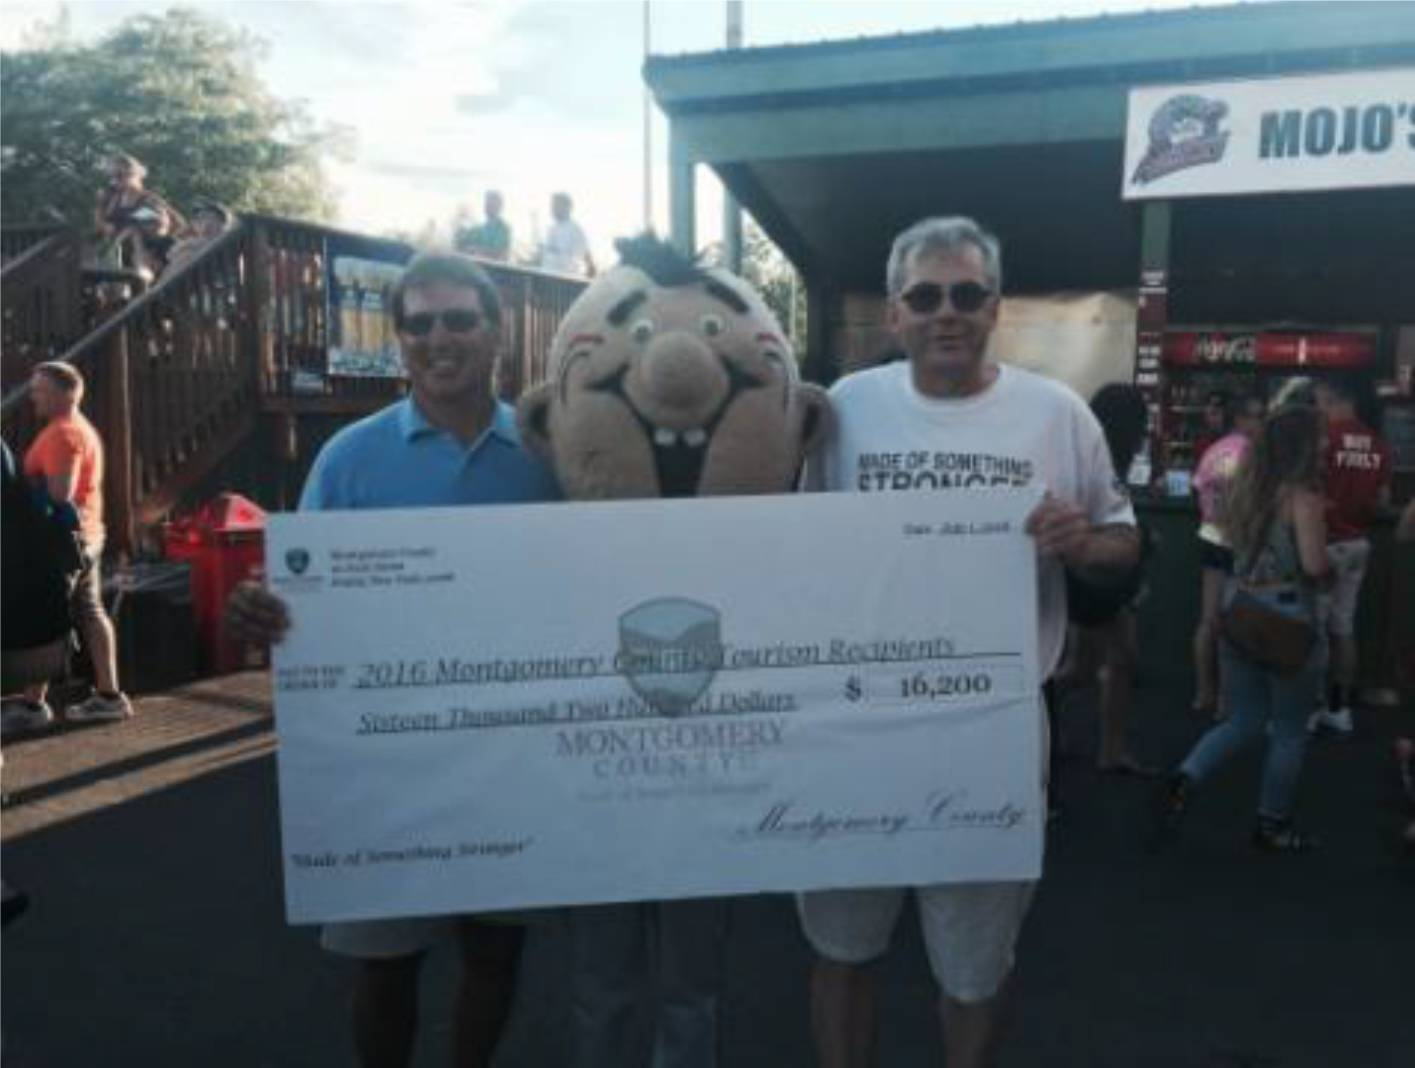 County Legislators Terry A. Bieniek (left) and Robert A. Purtell (right) pose with Mojo, the Amsterdam Mohawks mascot.